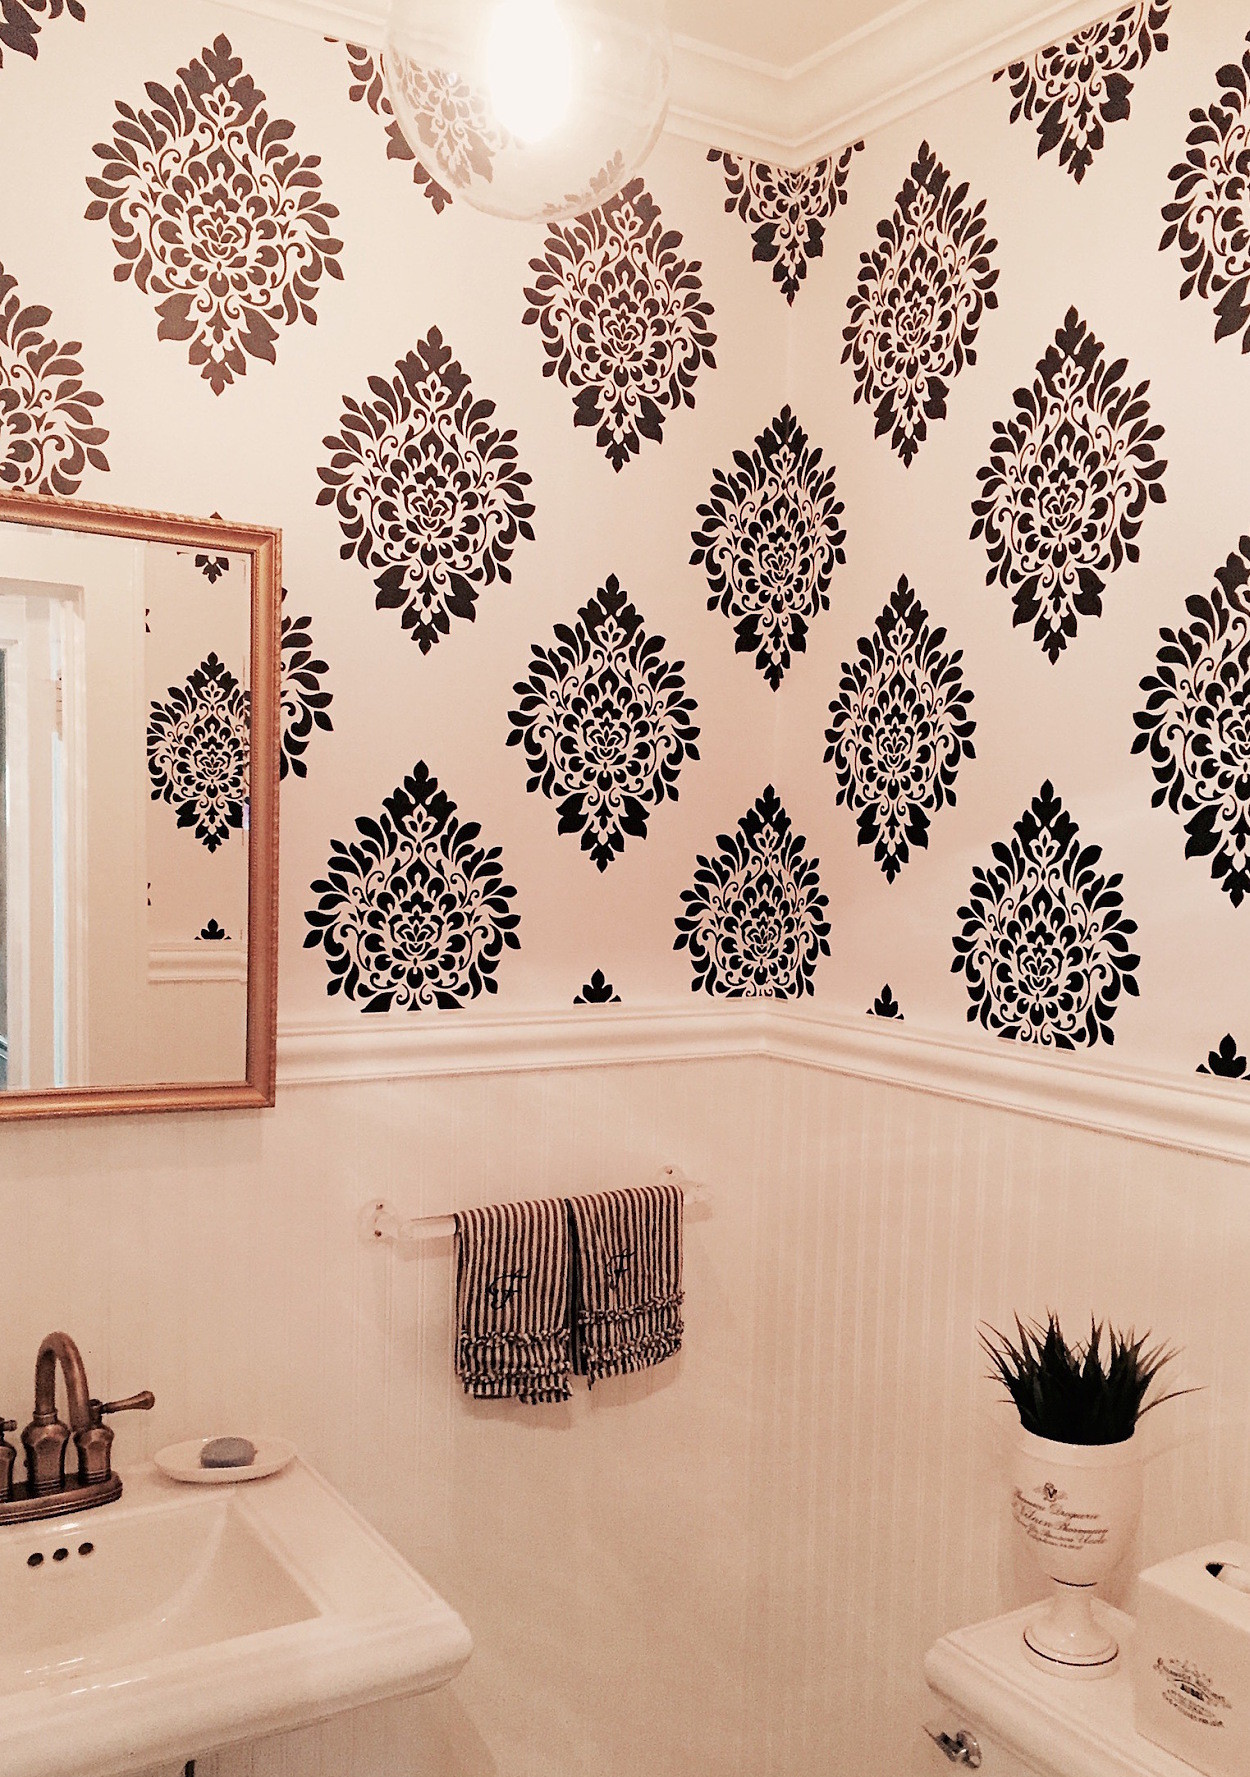 Thinking About A Bathroom Remodel? Here Are 4 Small Decorating Ideas With  Big Impact | Martha Stewart